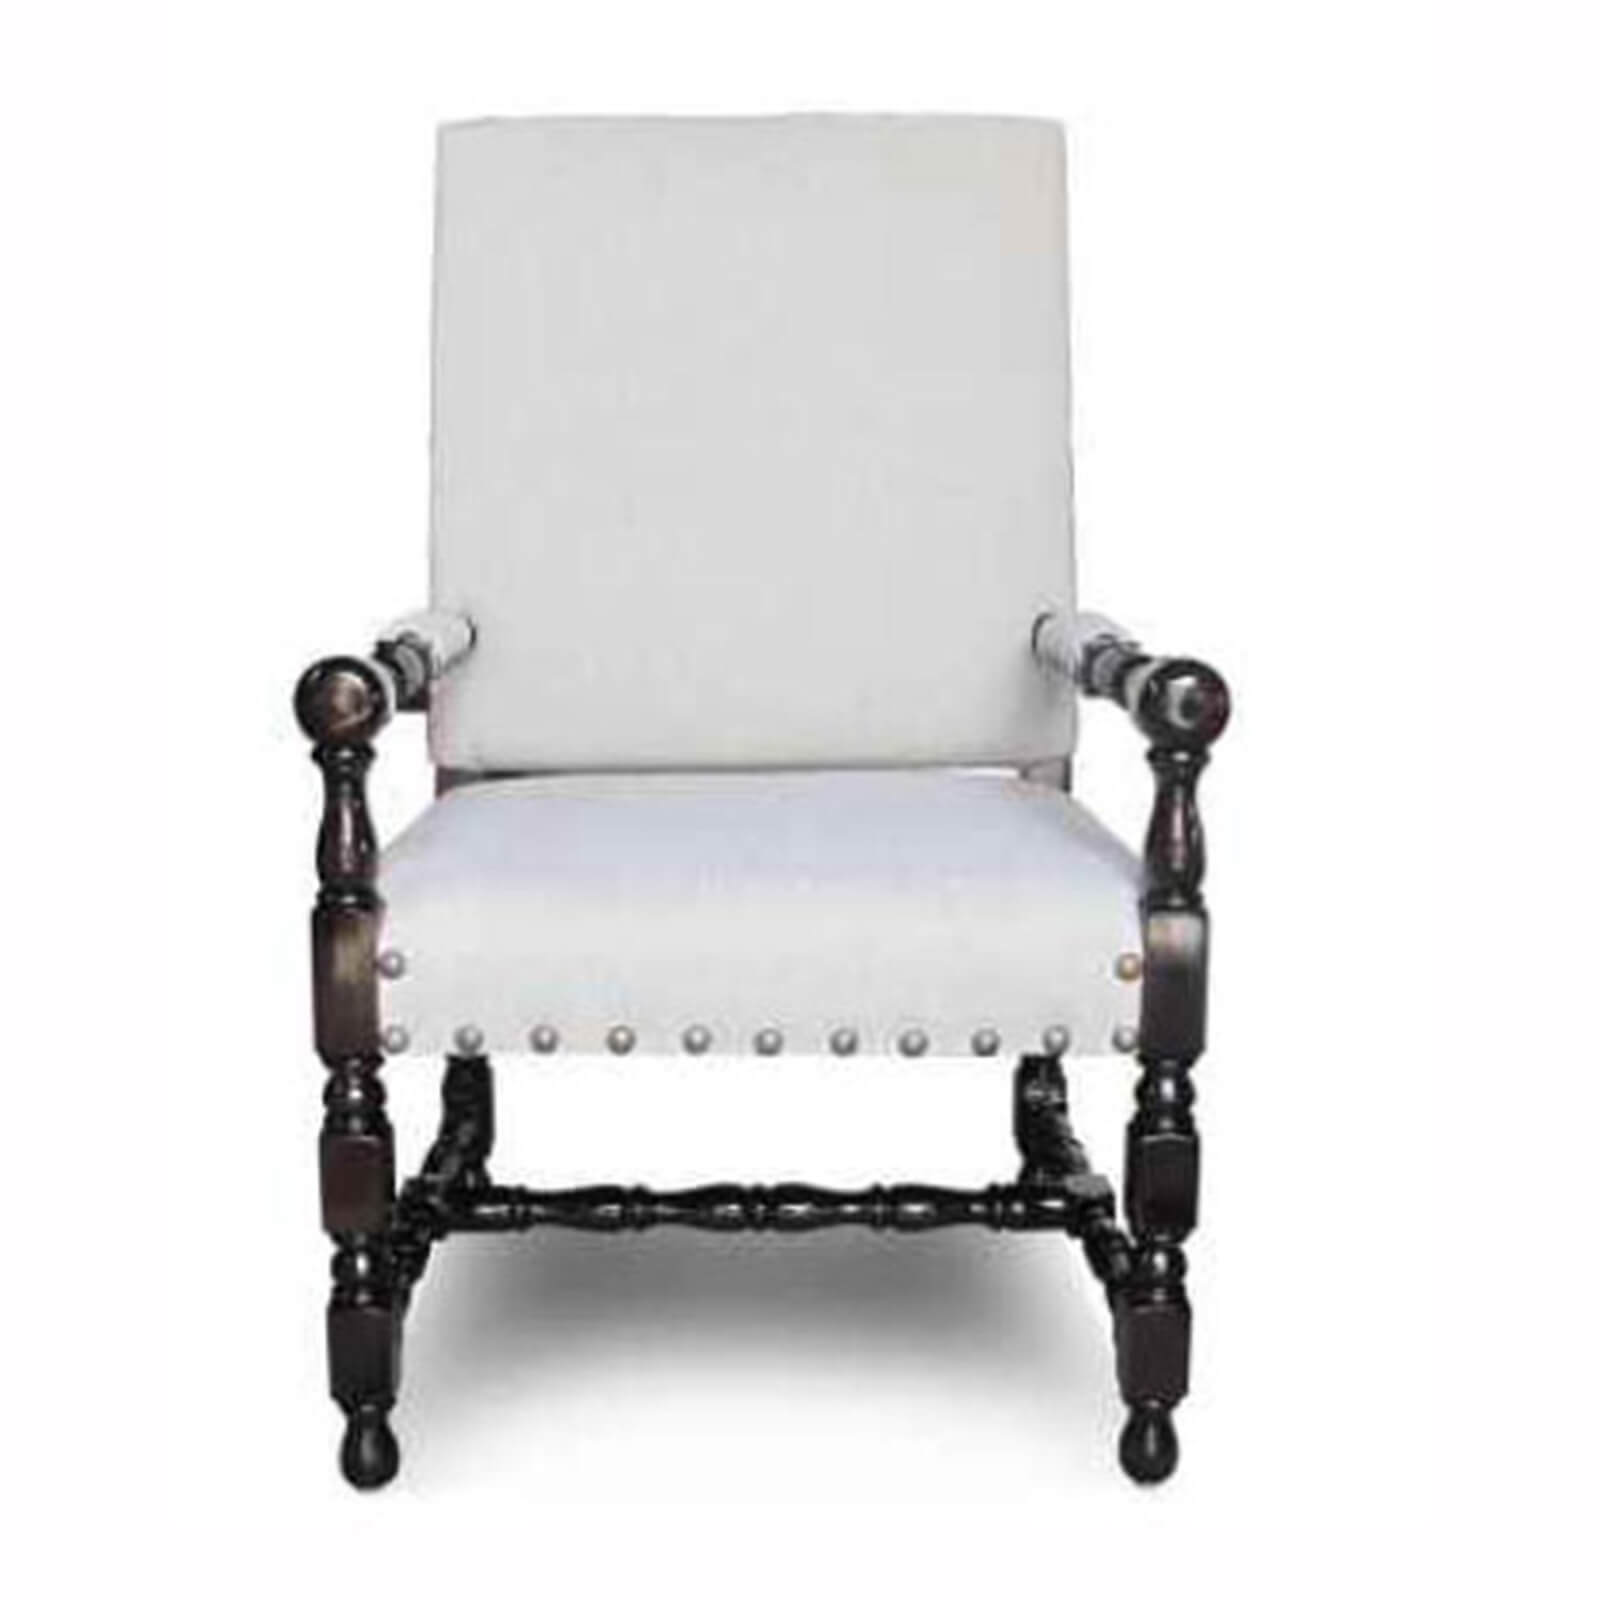 MANOR CHAIR 22 - STUART MEMBERY HOME COLLECTION